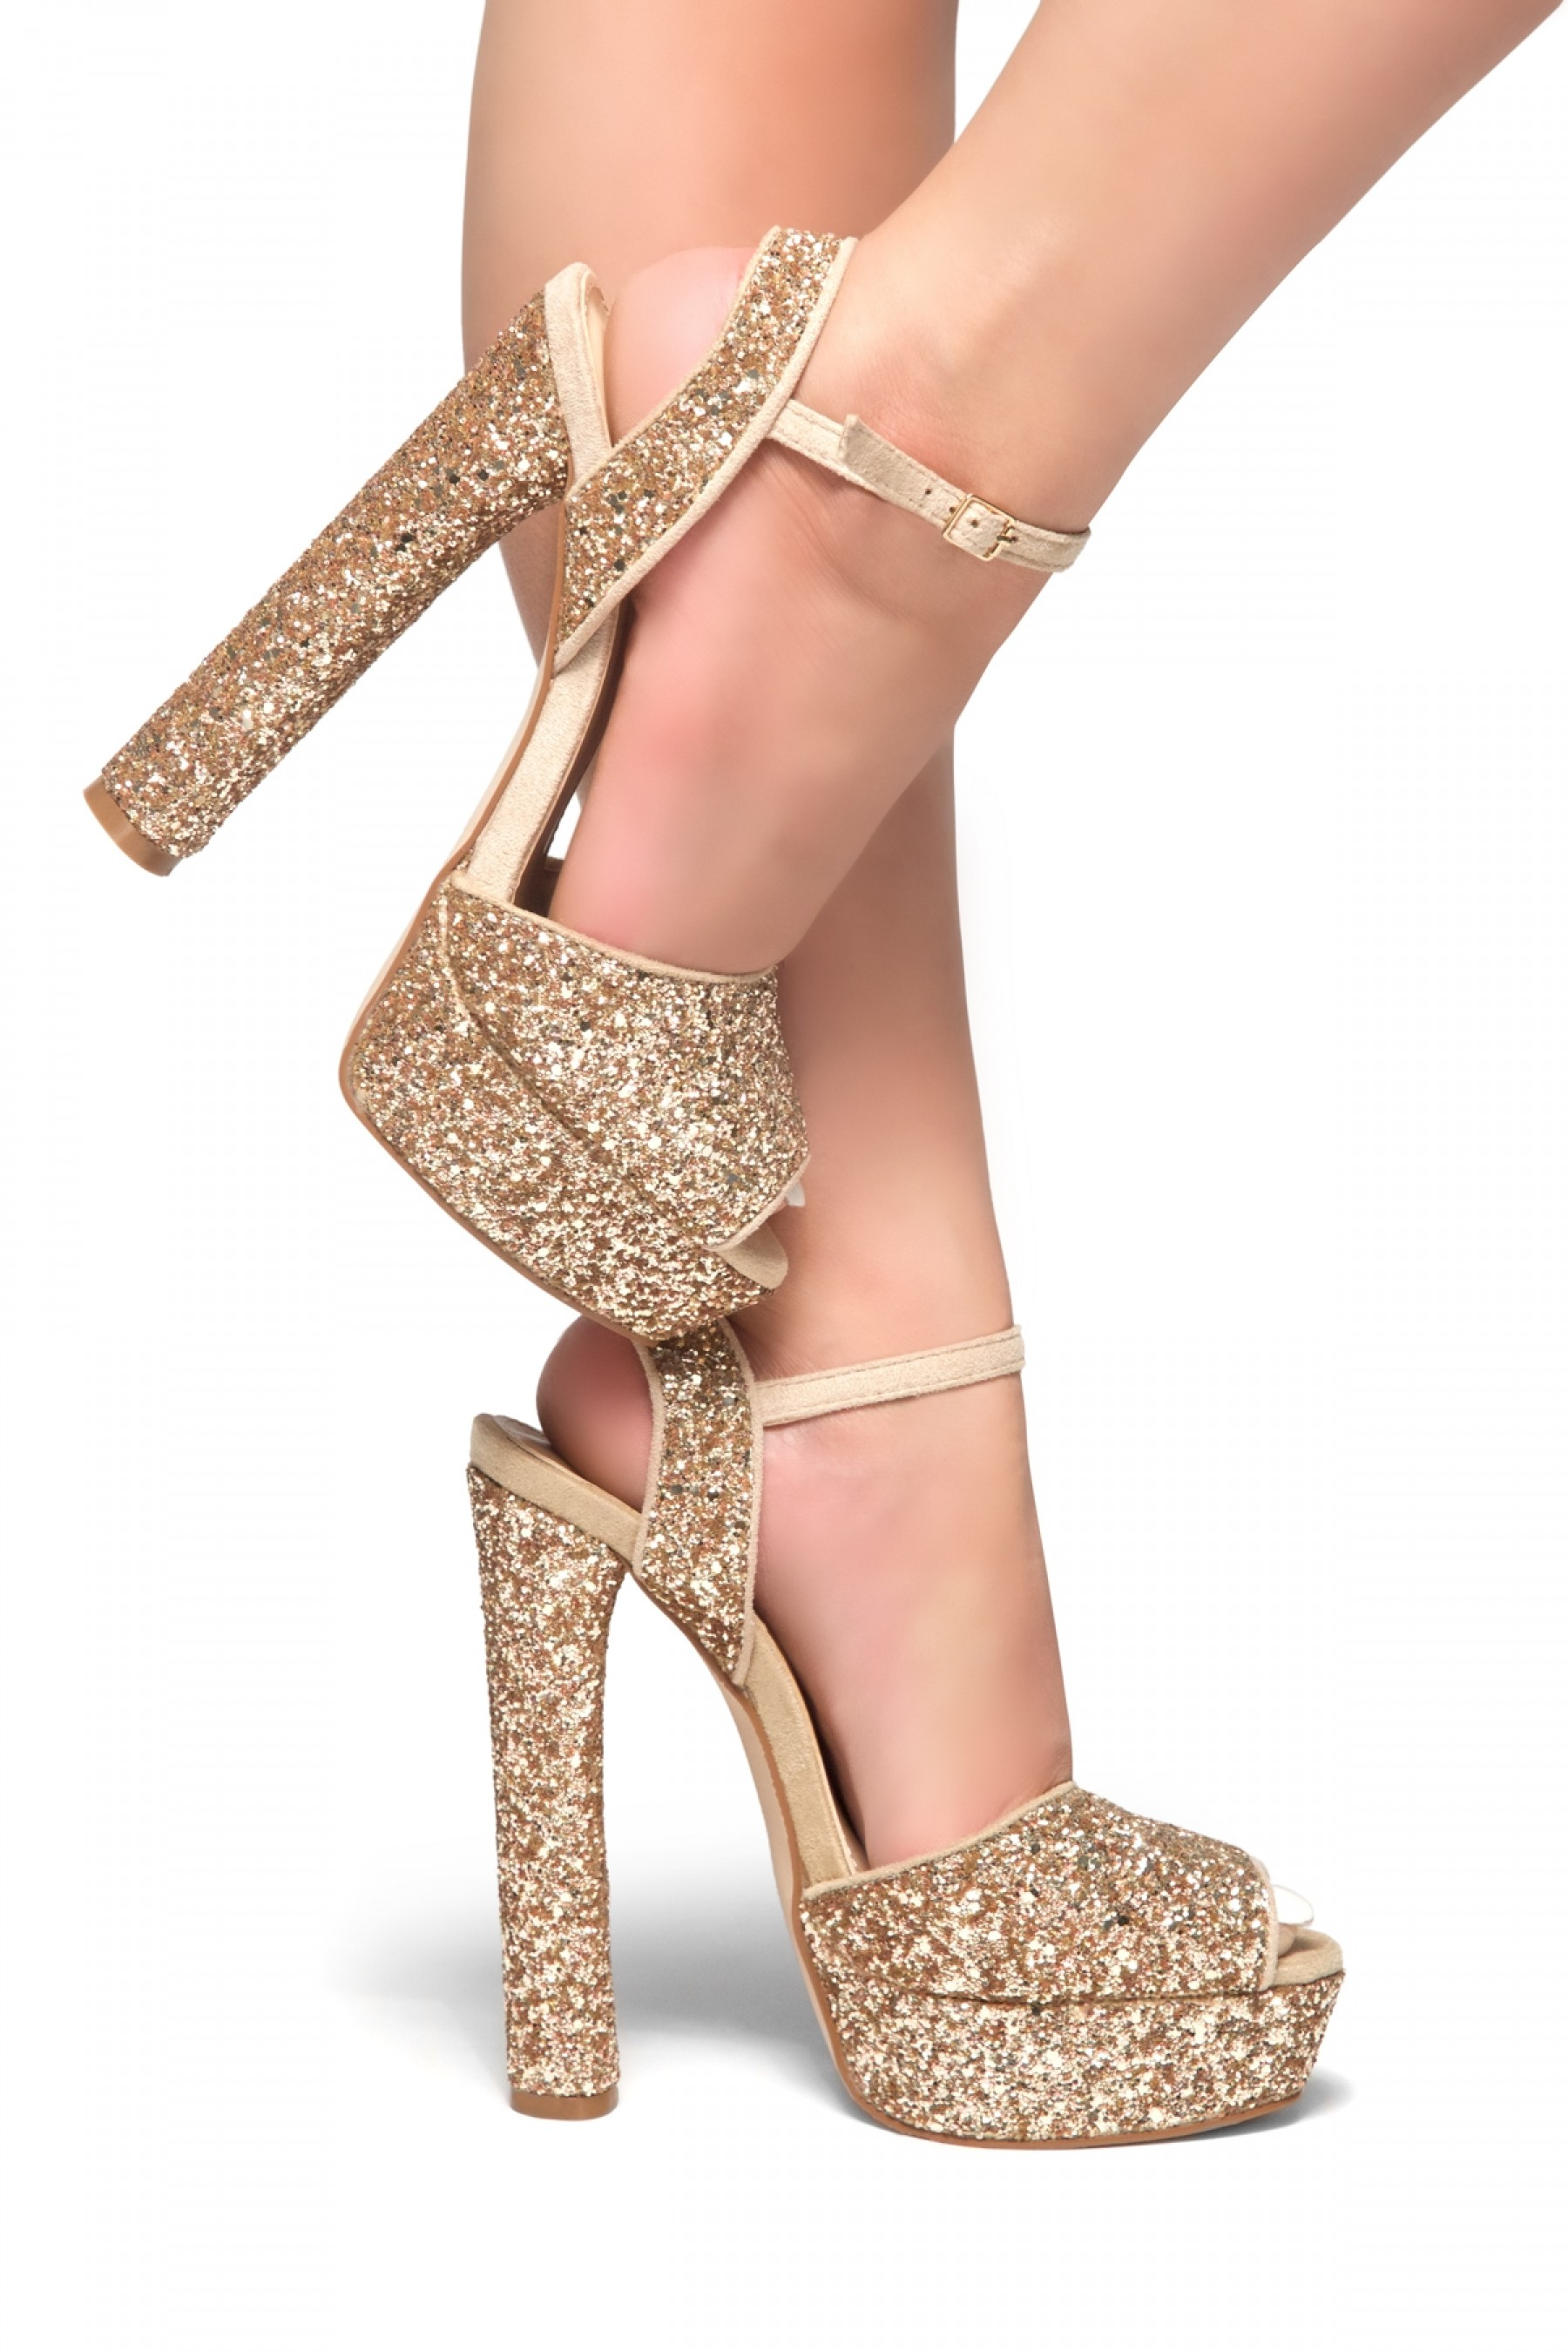 CHASITY-Peep Toe Platform Heel in Glitter (Rose Gold Glitter)